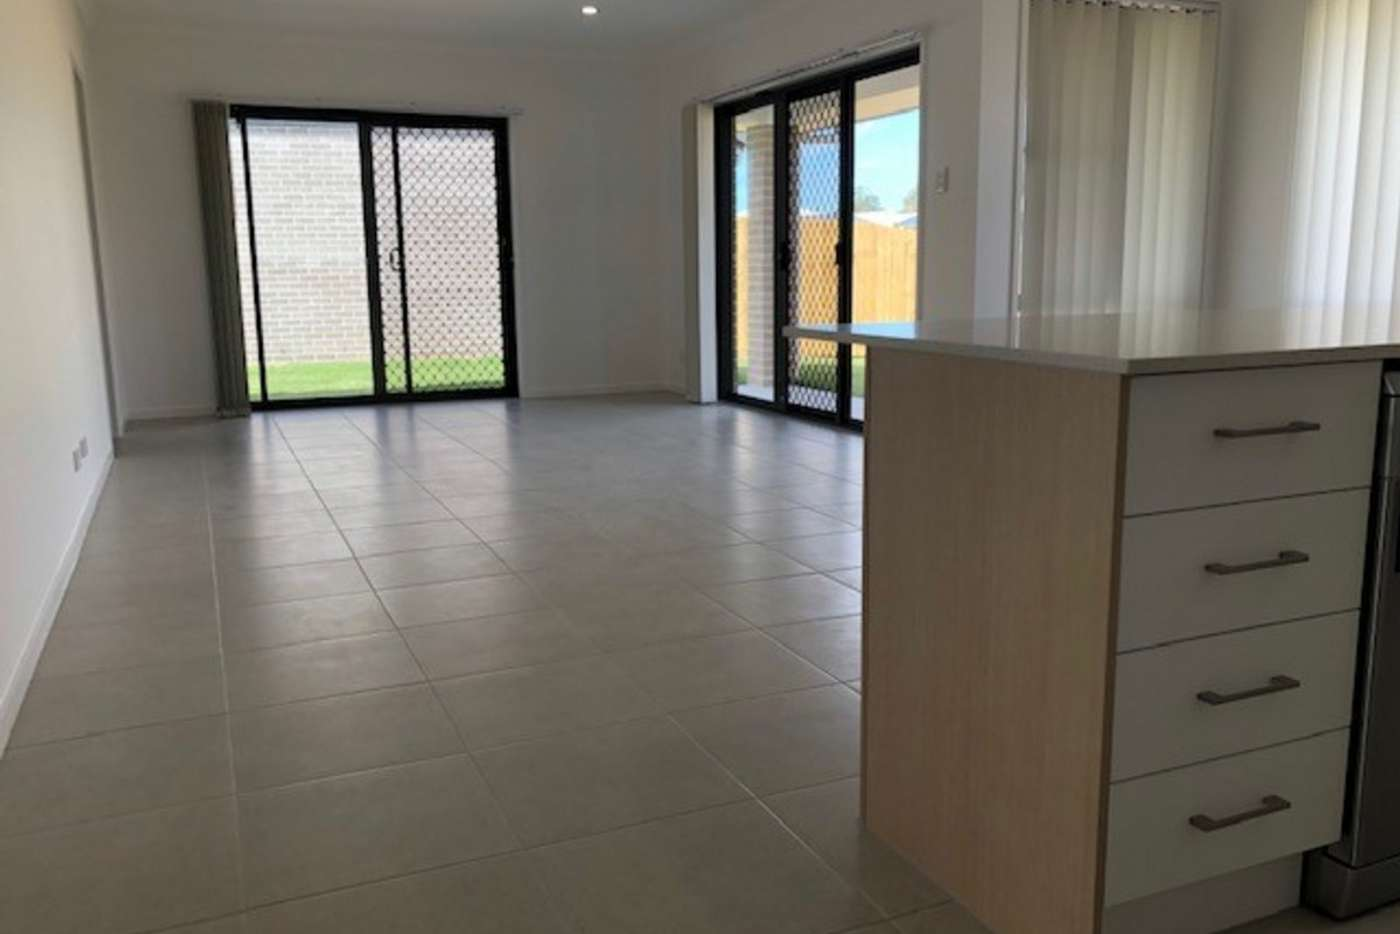 Seventh view of Homely house listing, 29 Fairbourne Terrace, Pimpama QLD 4209